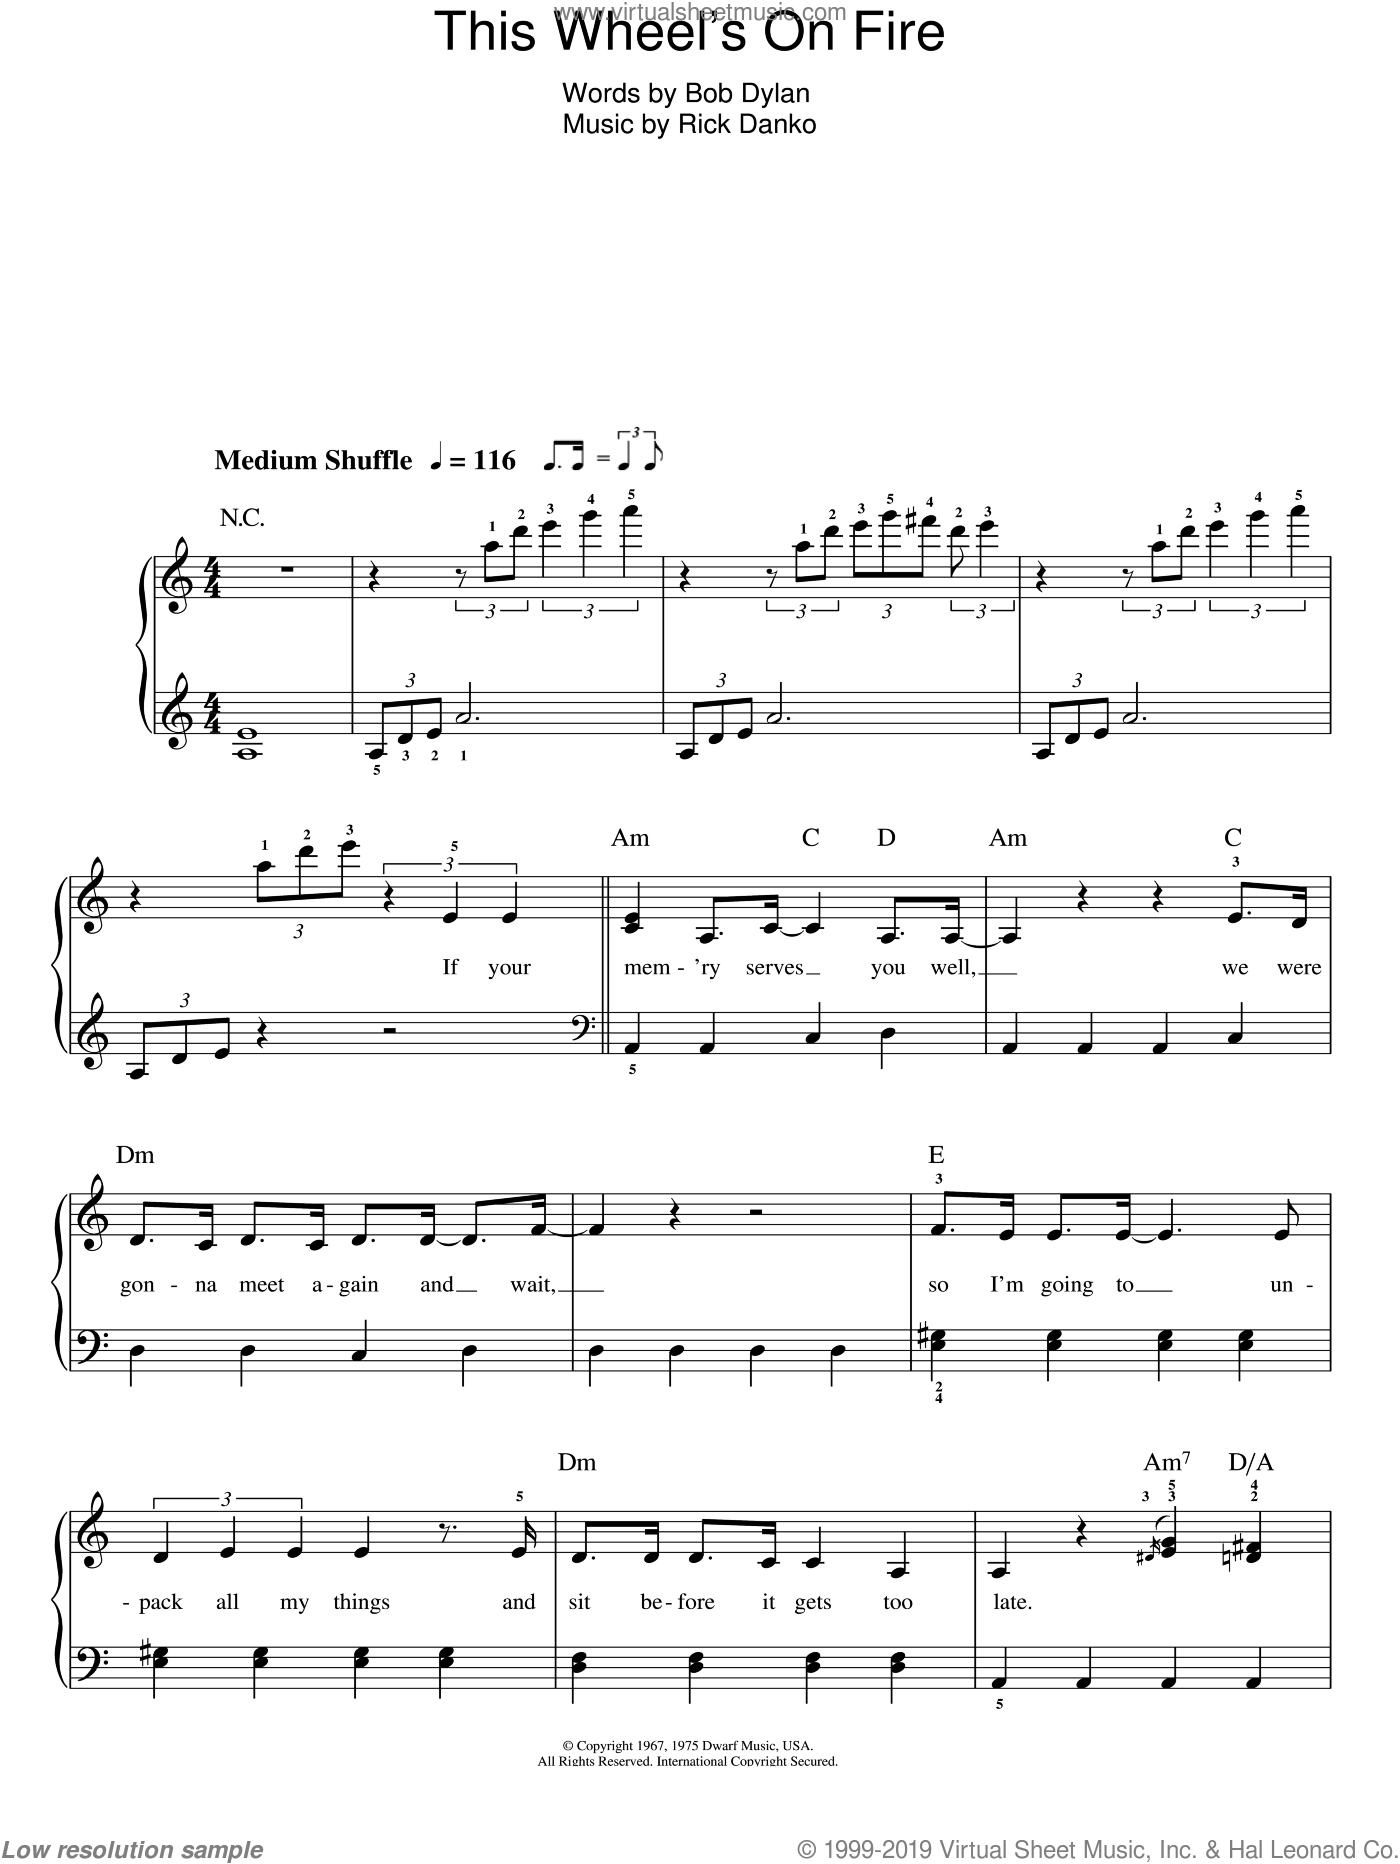 This Wheel's On Fire sheet music for piano solo by Bob Dylan and Rick Danko, easy skill level